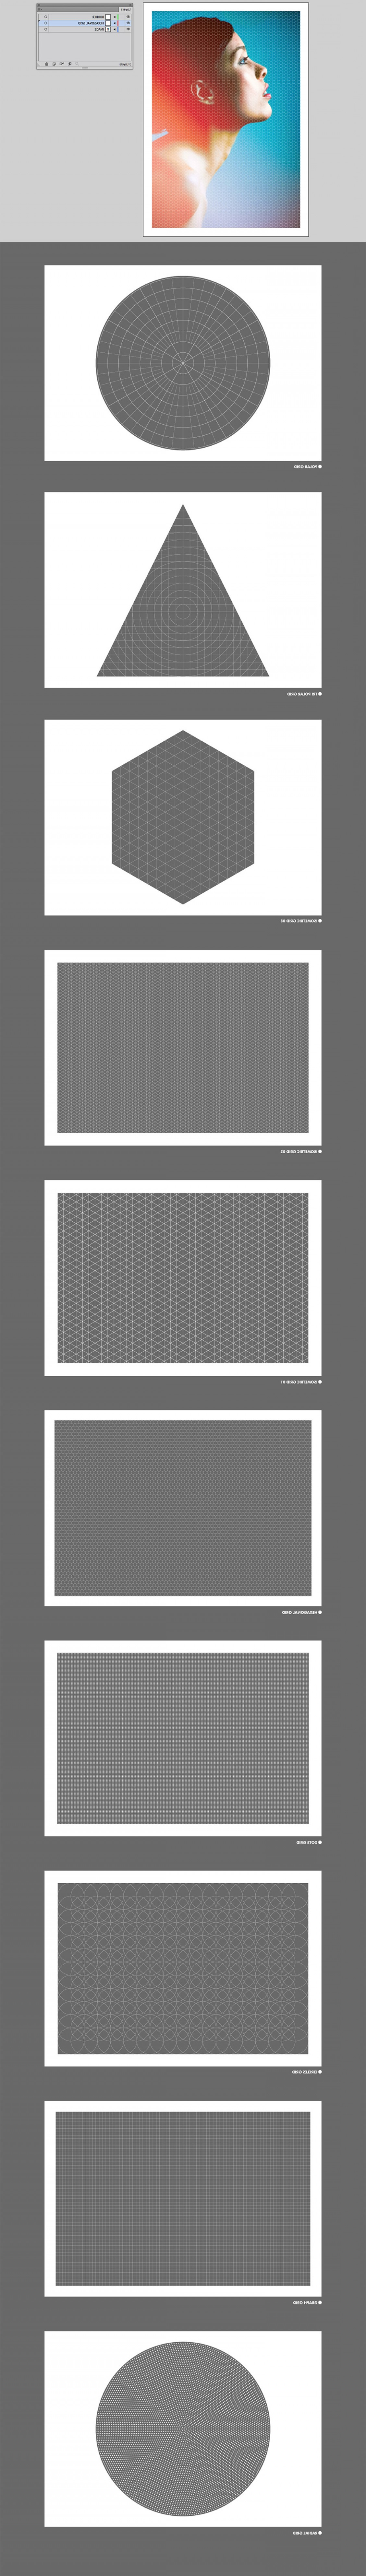 Mask Overlay Vector: Grid Overlay Masks Vector Bitmap Off Intro Special